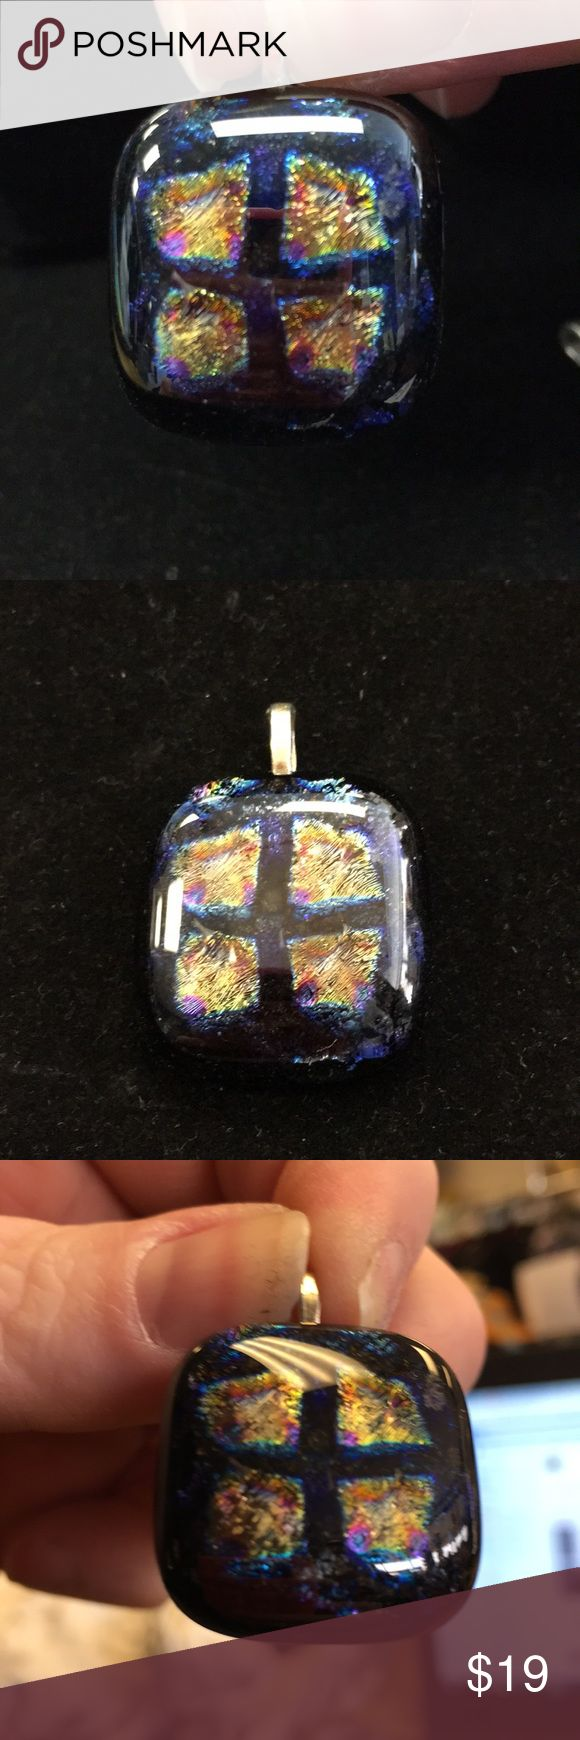 "Tardis window dichroic glass pendant Wibbley Wobbley Timey Wimey.  Dichroic glass is a glass which displays various colors by undergoing a change in certain light conditions. It is a modern composite non-translucent glass that is produced by stacking layers of metals or oxides.  Metal alloy posts.  24"" chain included. Jewelry Necklaces"